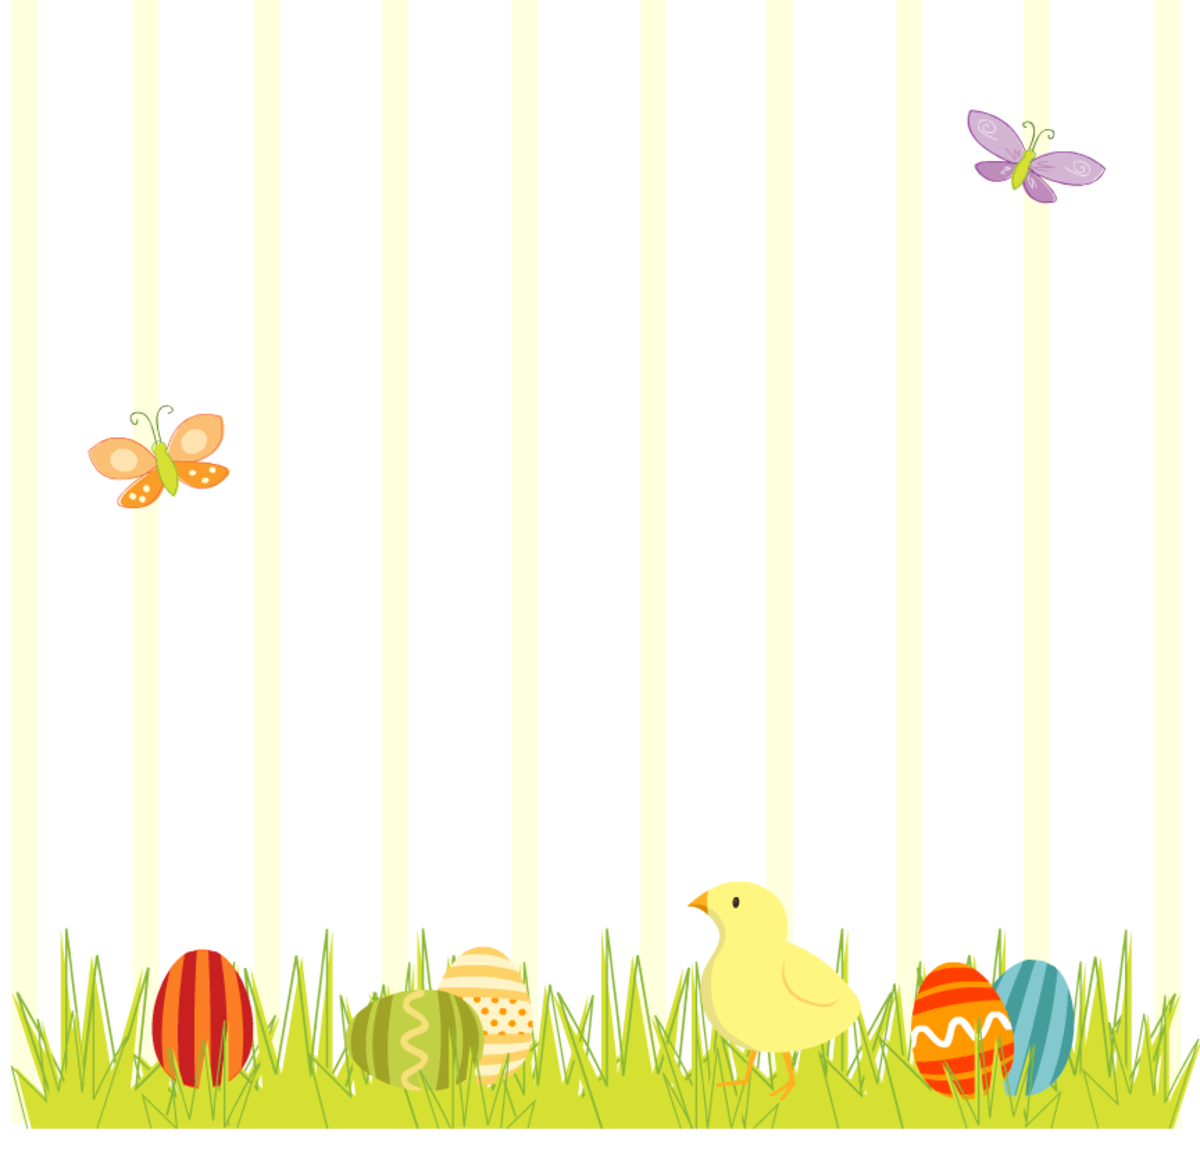 Easter scrapbook layout: Baby chick with Easter eggs in the grass